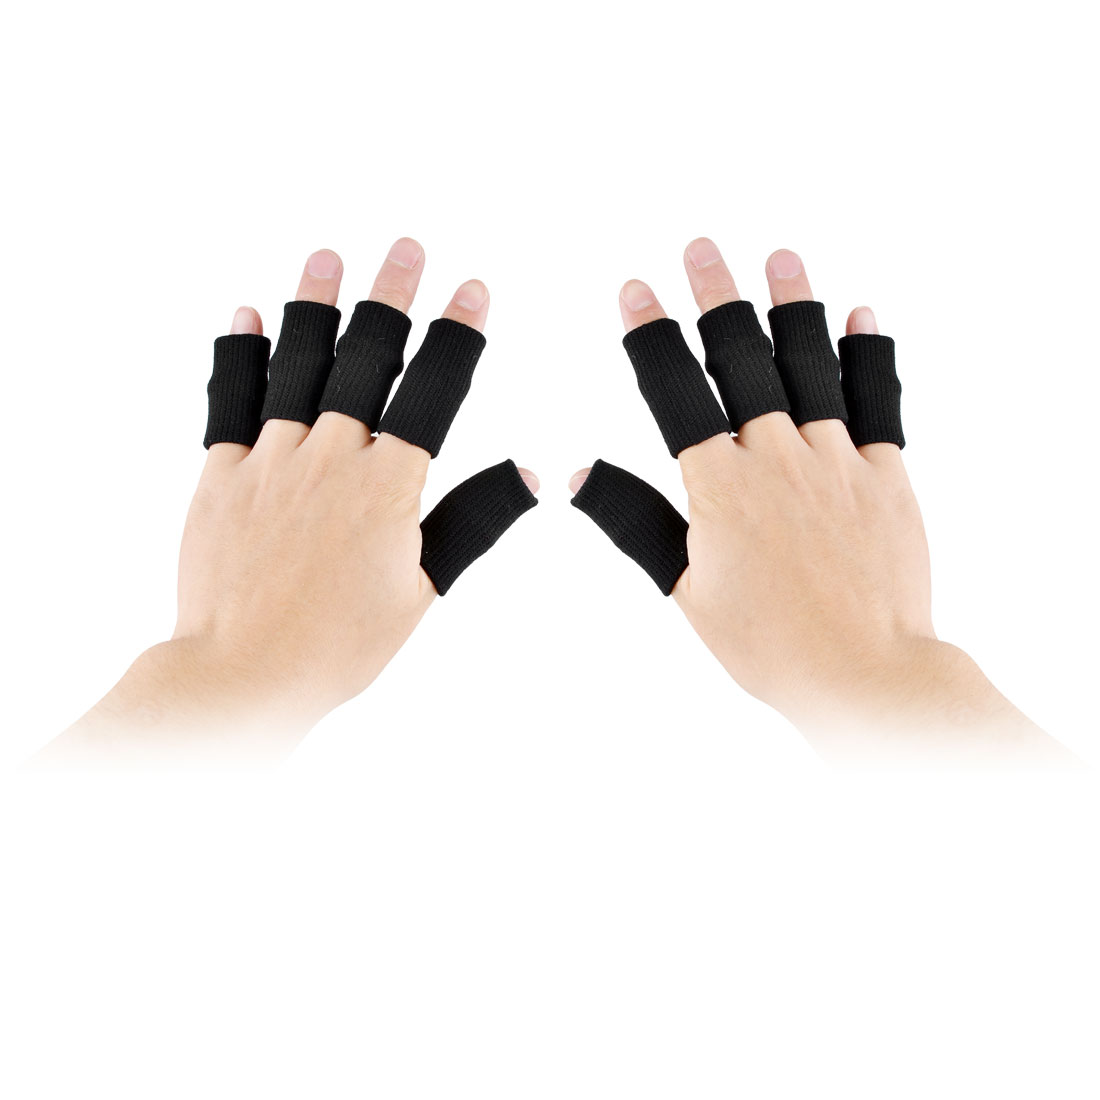 Outdoor Volleyball Elastic Sports Fitness Finger Sleeve Cover Black 10 Pcs